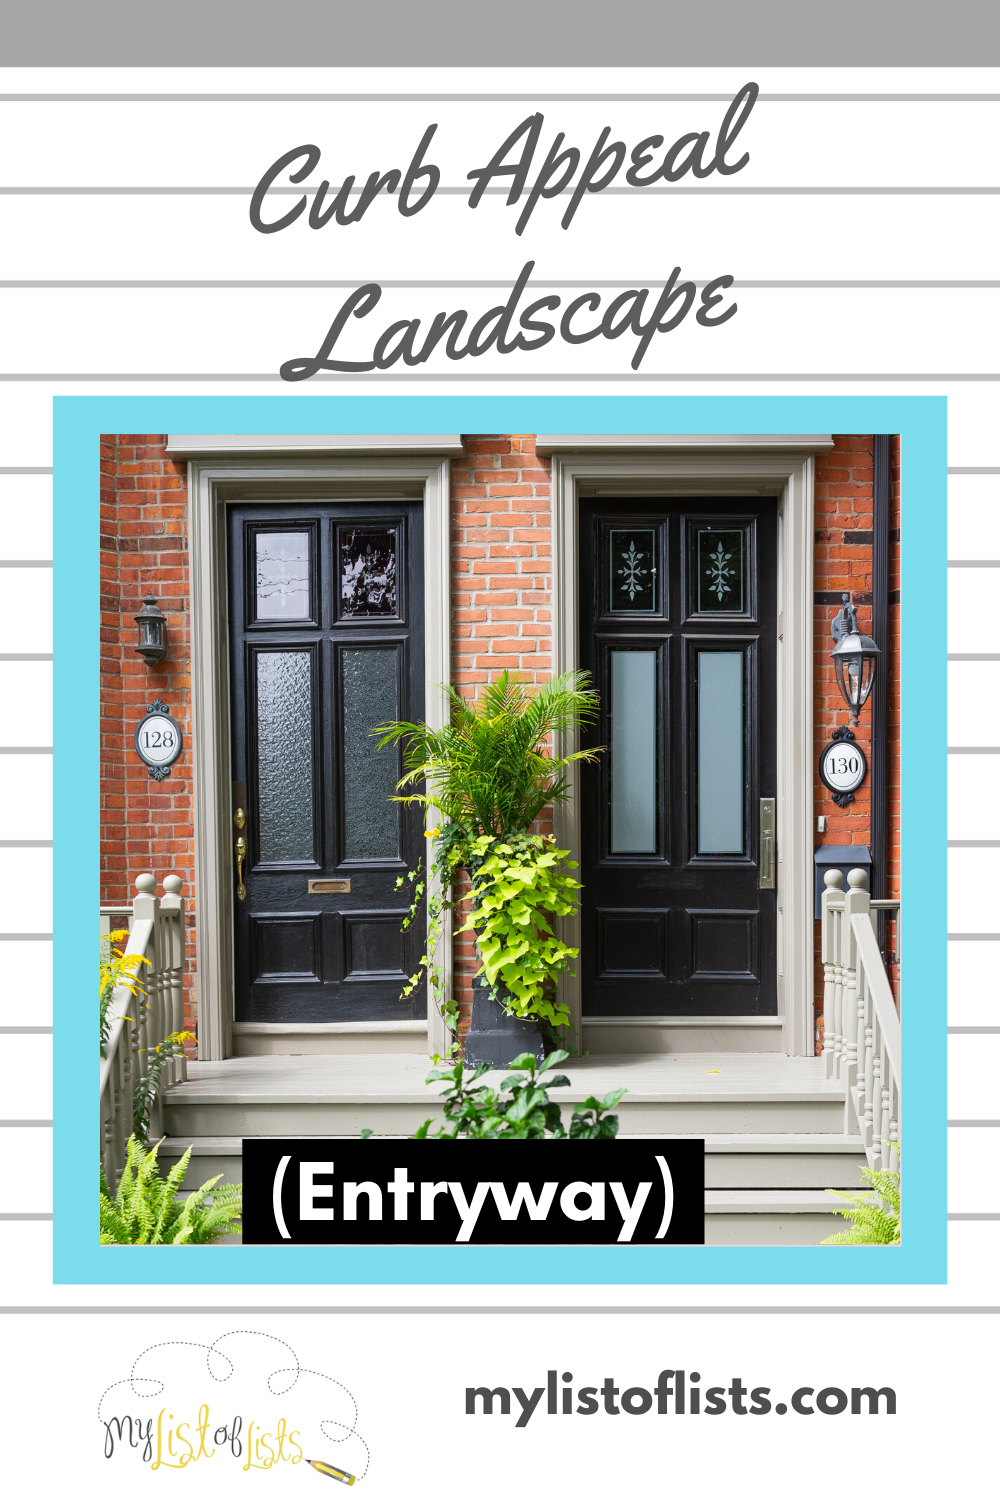 When people come to your house, does your entryway scream curb appeal? If not, we can help. Read this article for curb appeal ideas that really make a difference. #curbappeal #landscaping